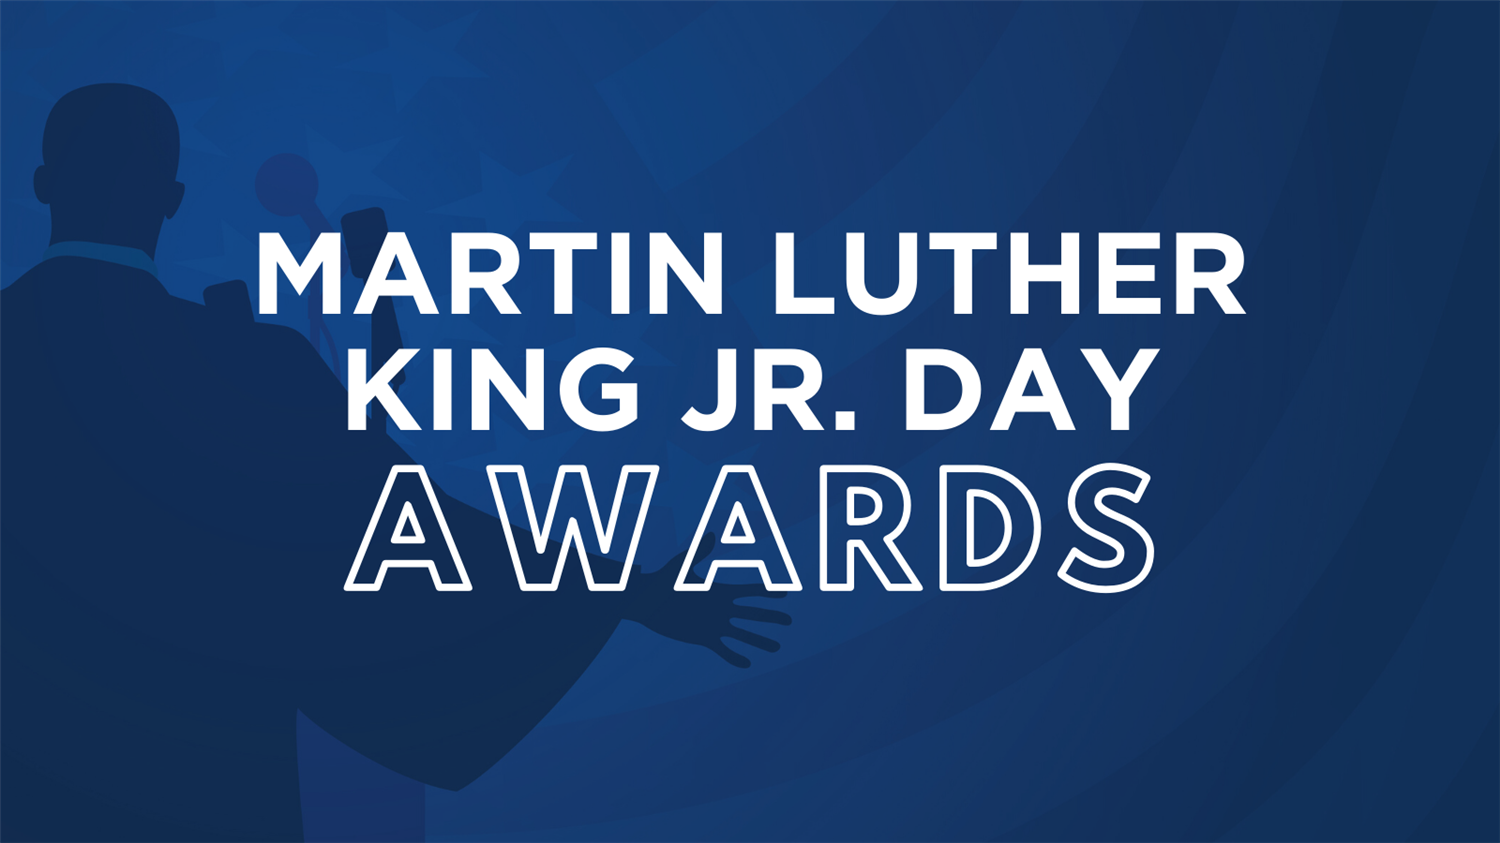 LISD Announces Dr. Martin Luther King, Jr. Essay, Art and Photography Contest Finalists